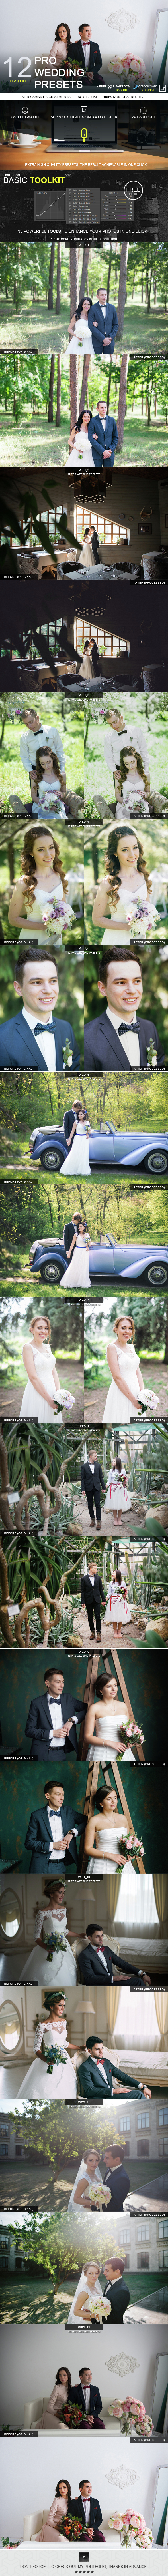 12 Pro Wedding Presets - Wedding Lightroom Presets